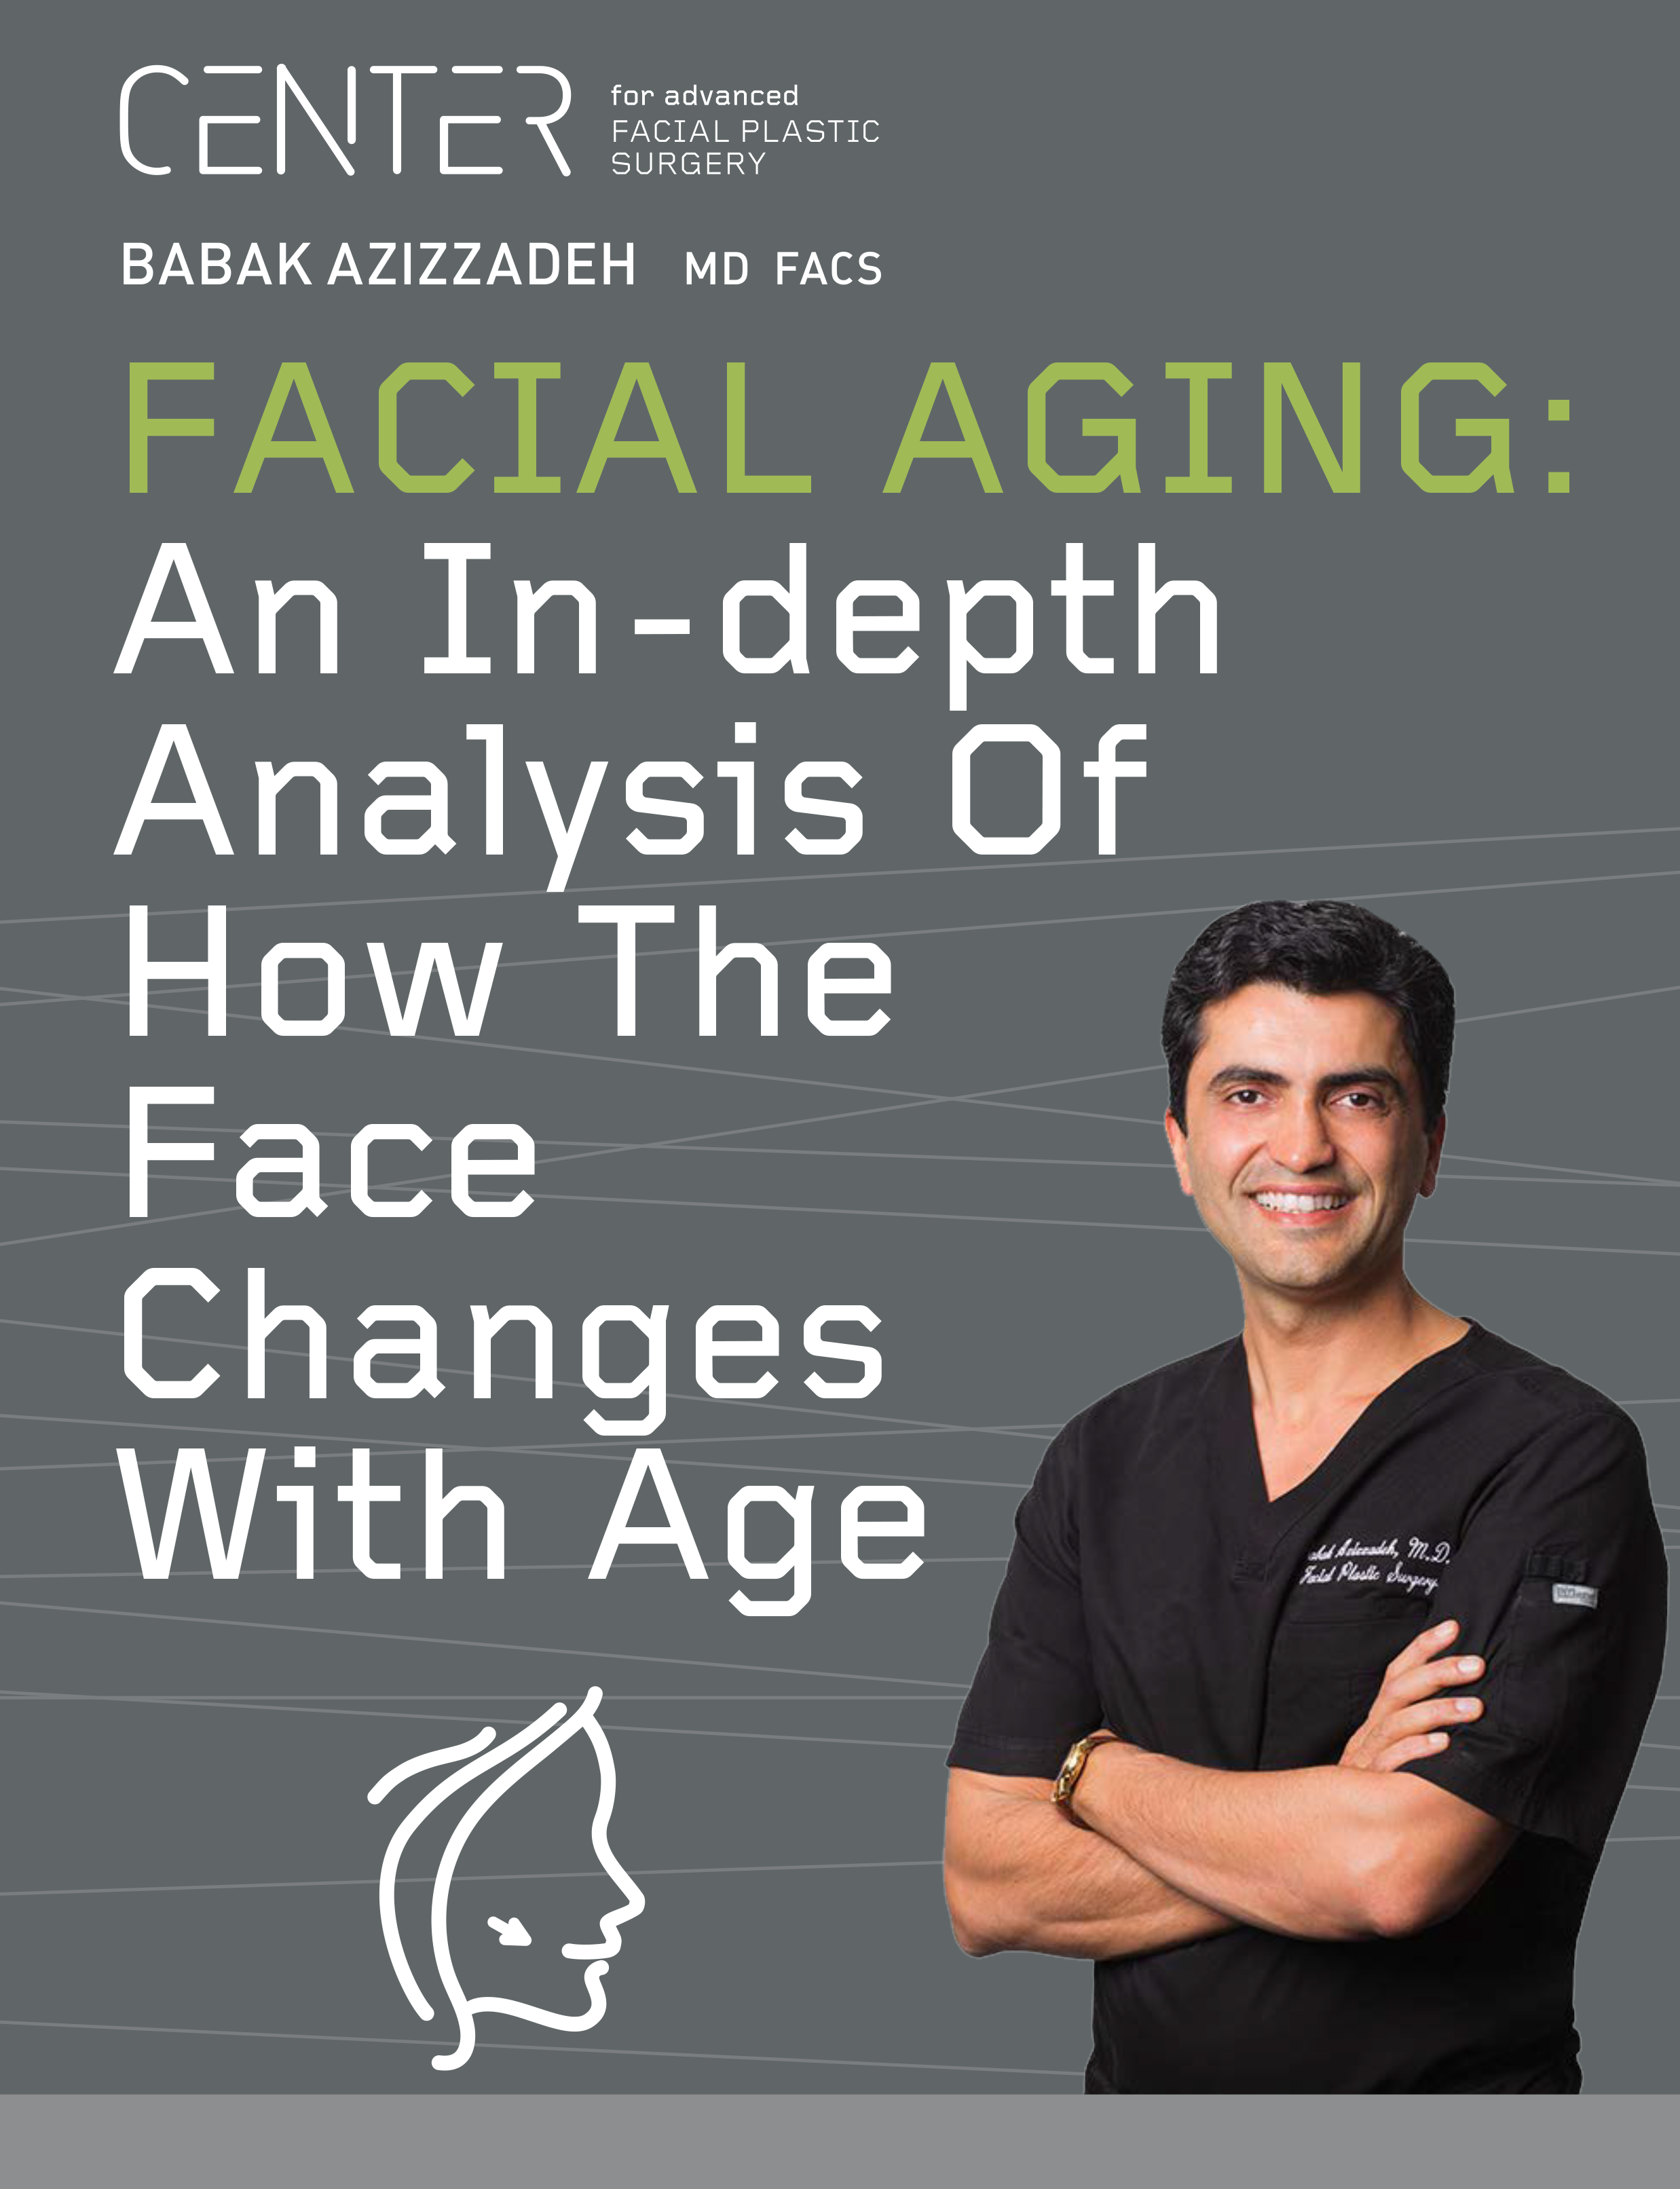 Facial Aging: An In-depth Analysis Of How The Face Changes With Age